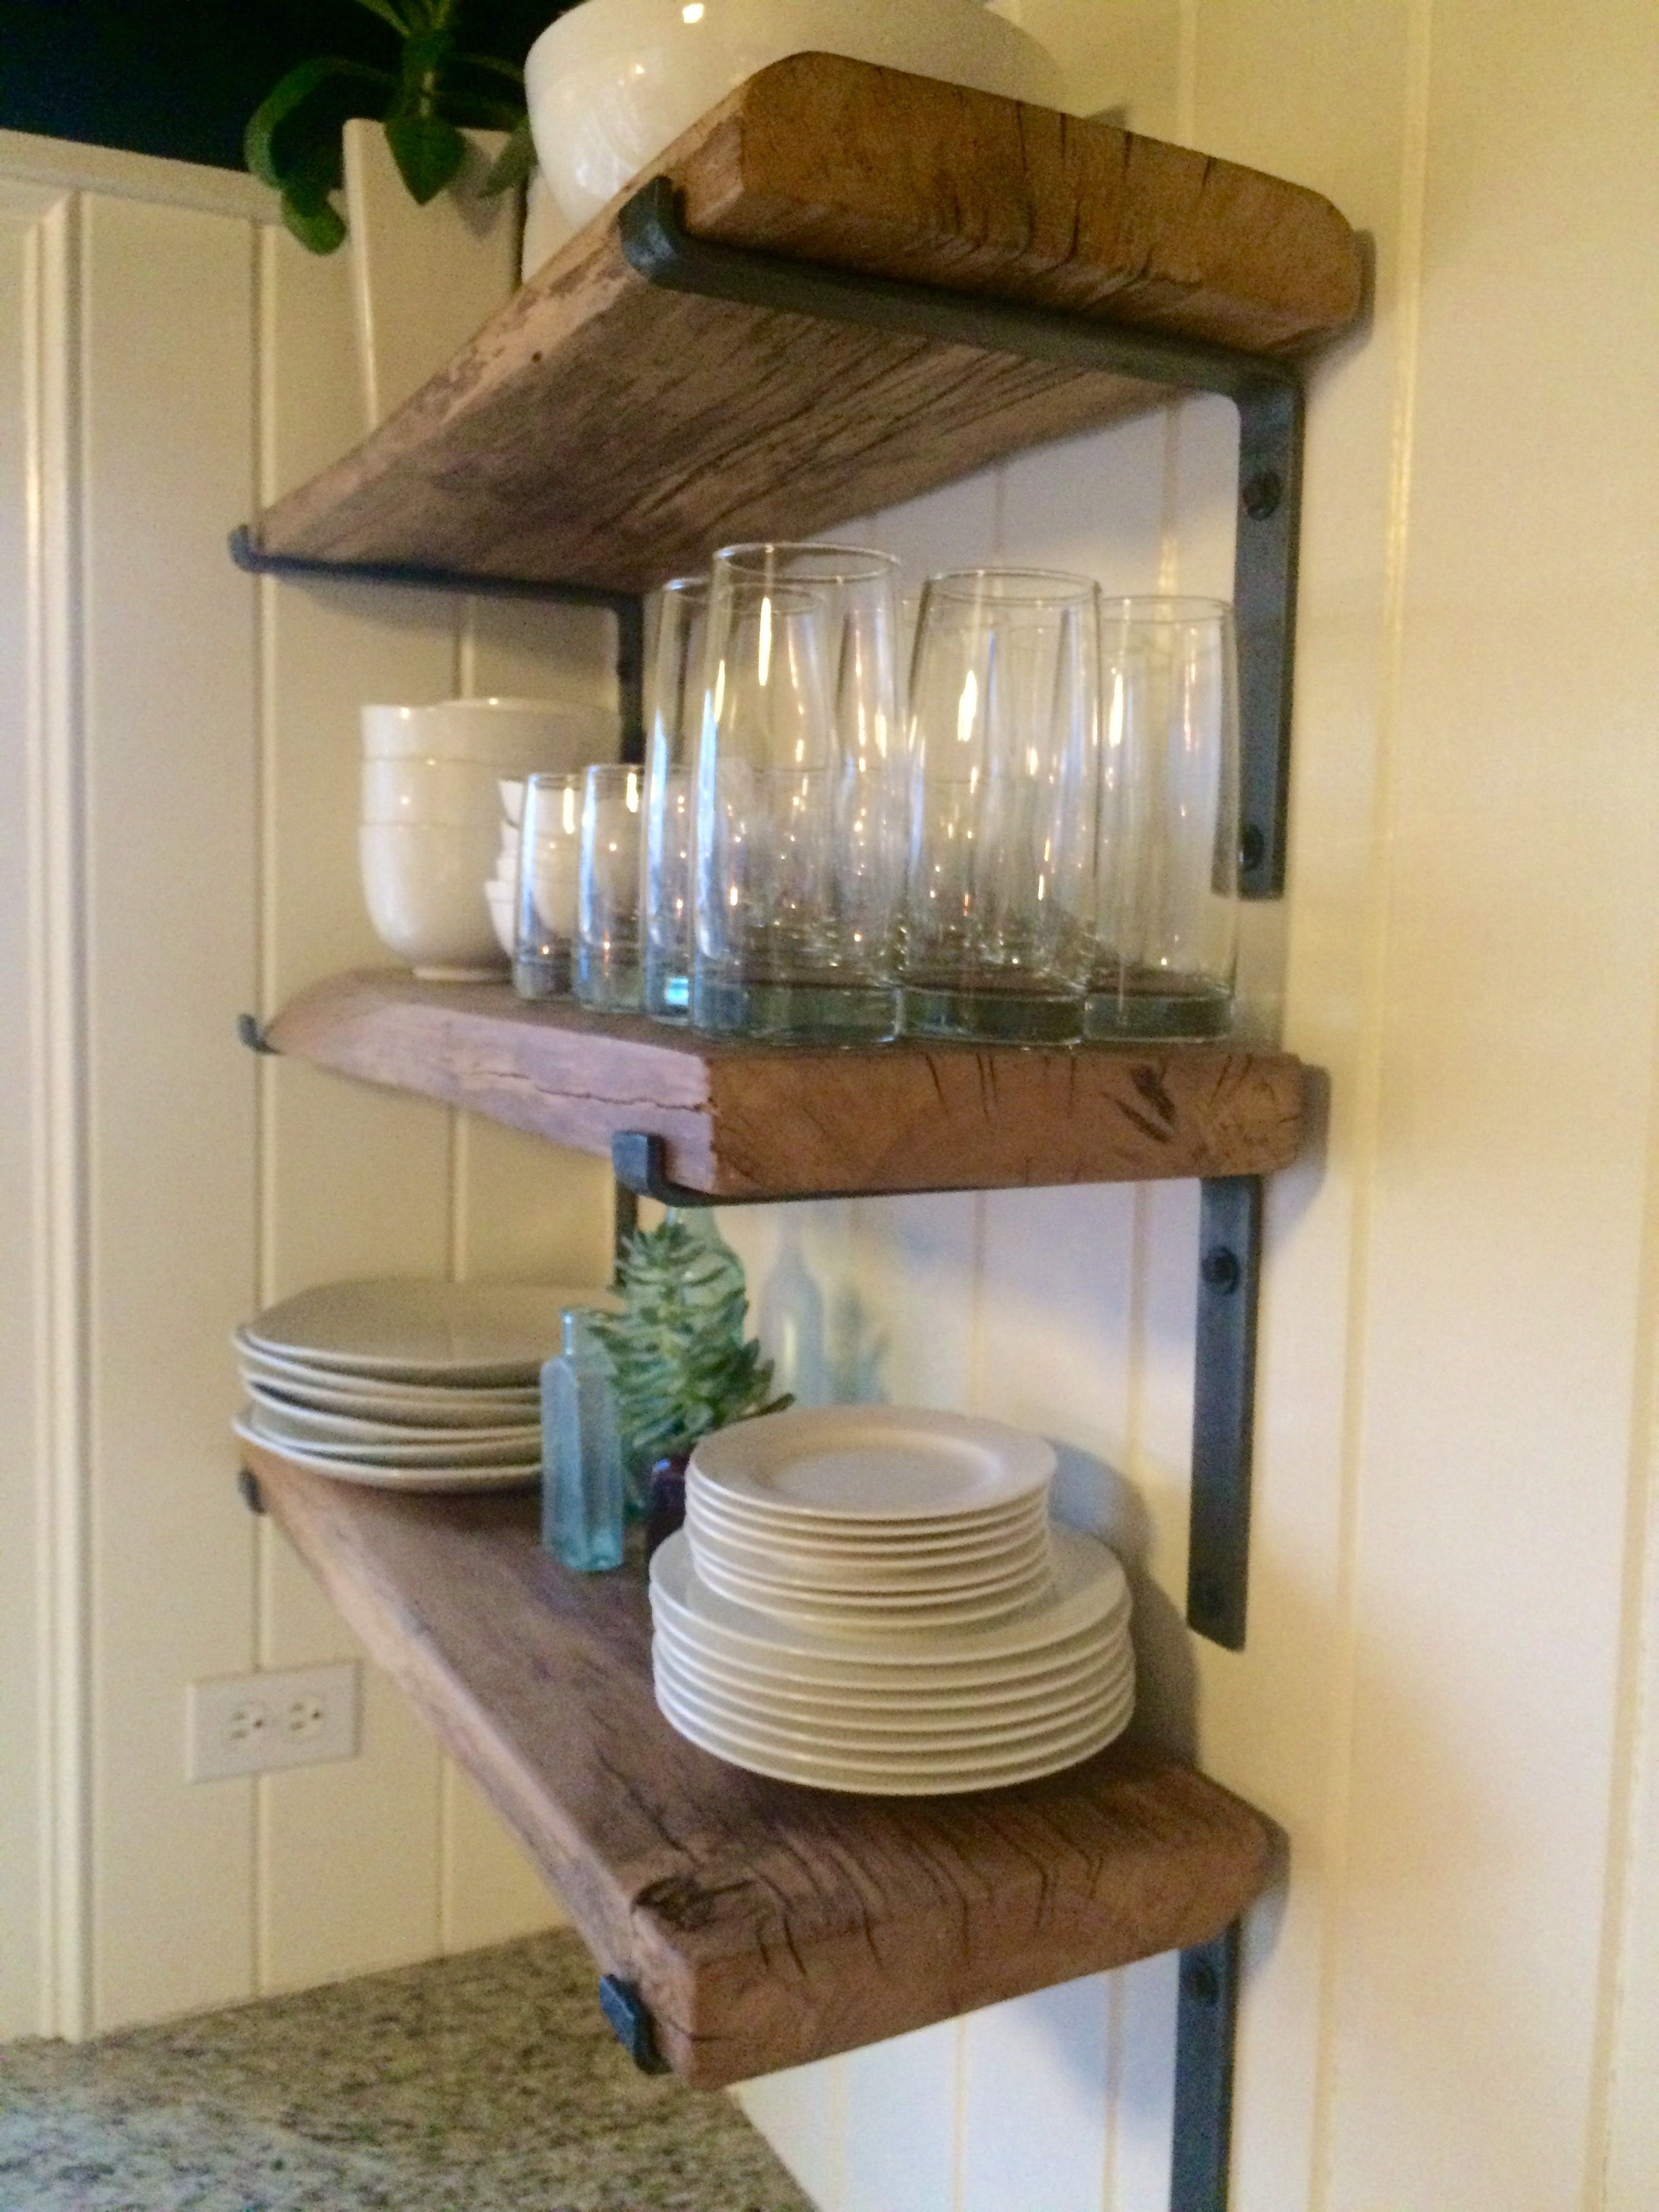 Reclaimed Shelves with Hand Made Brackets | Küche ...